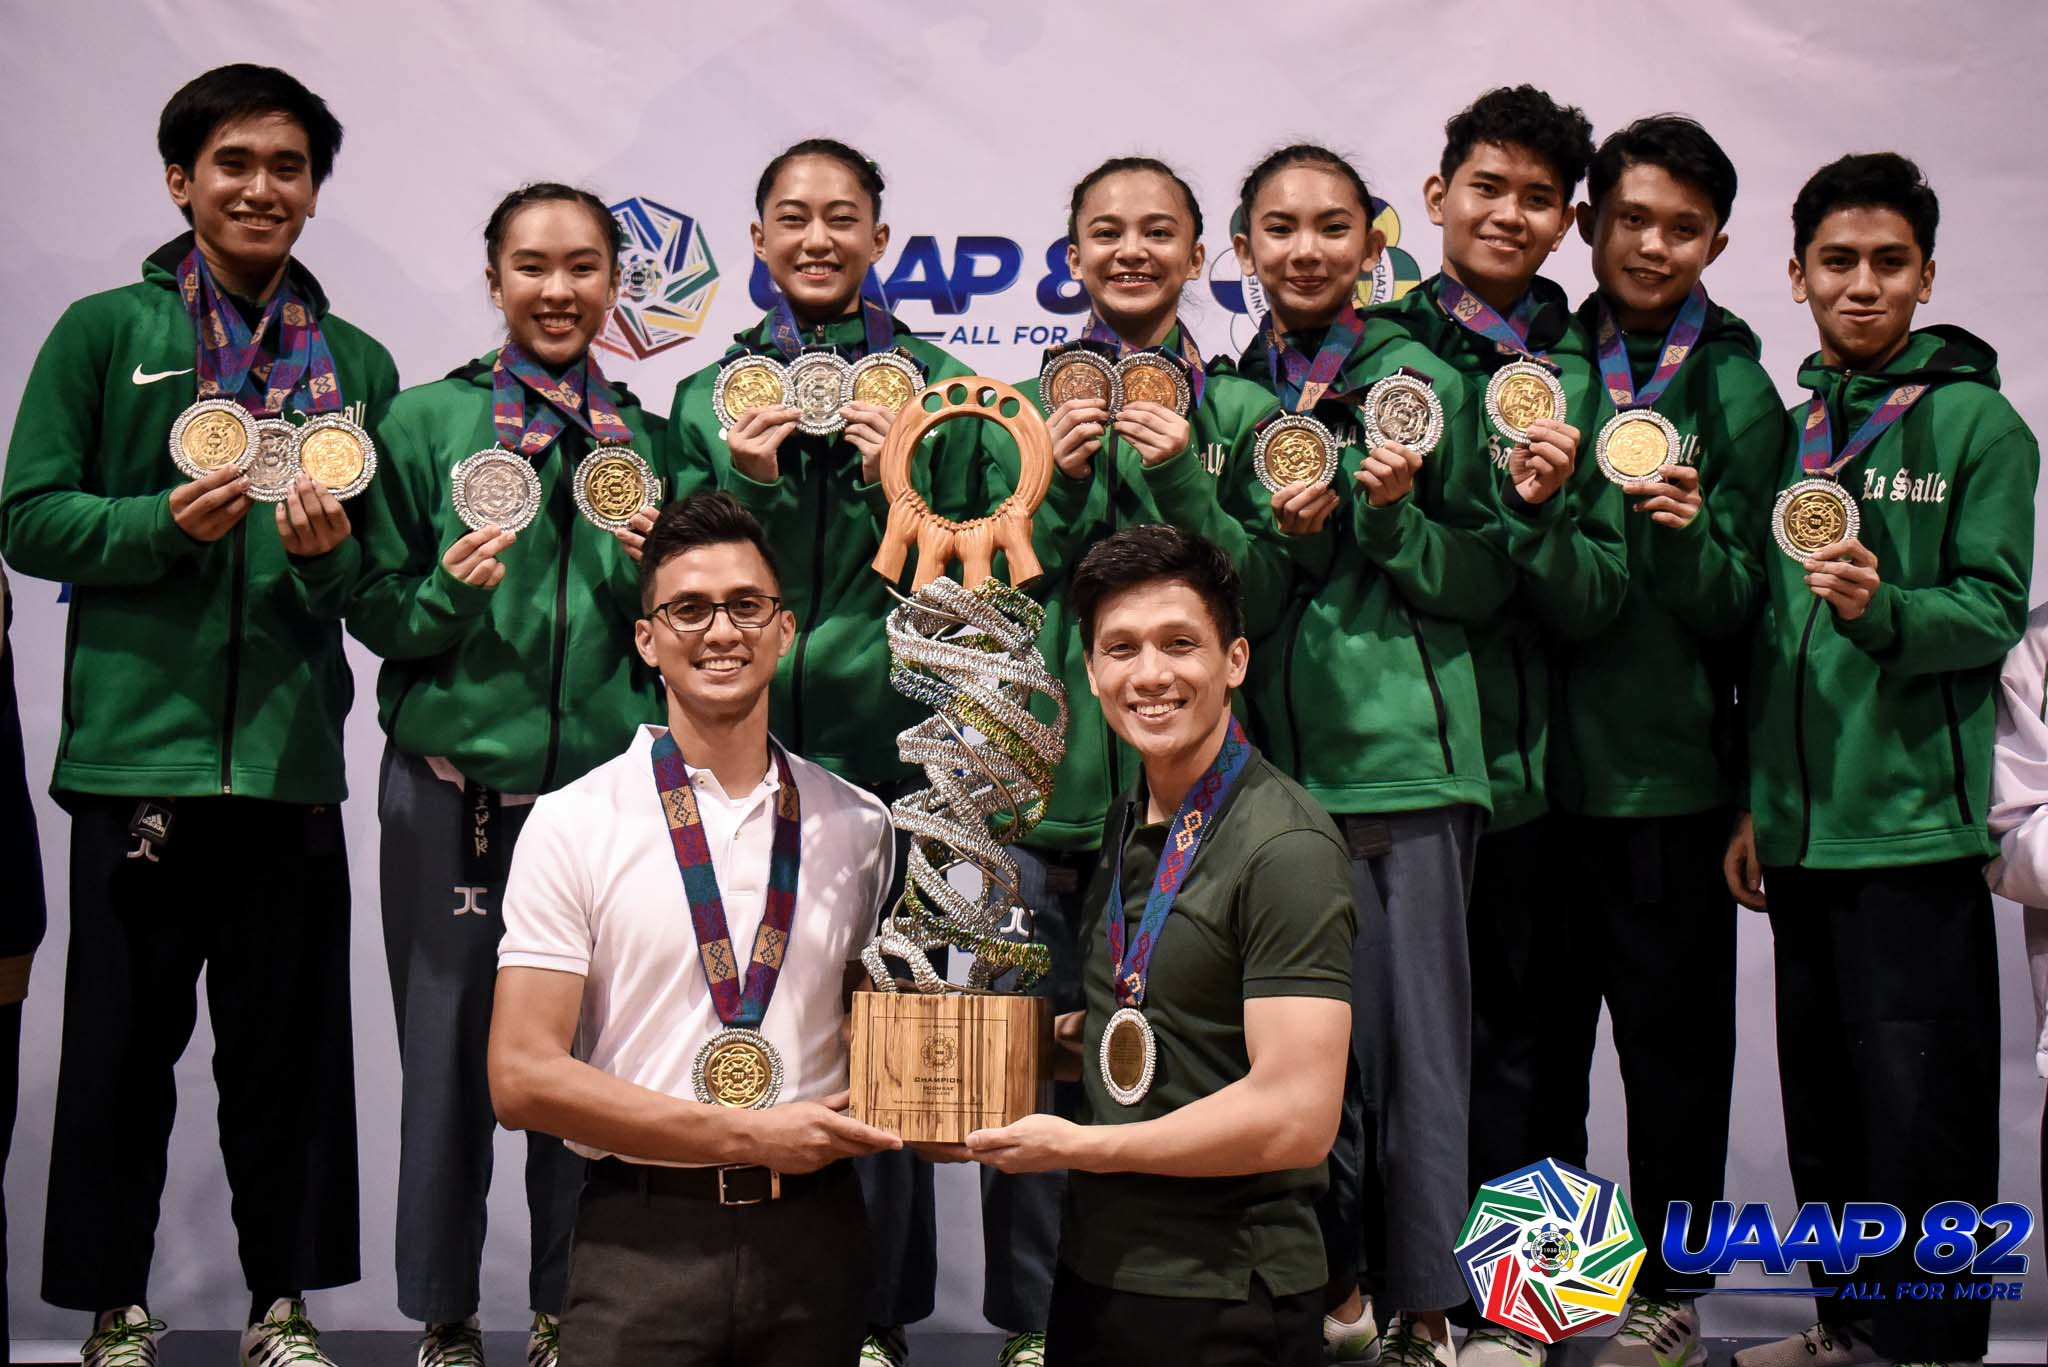 Tiebreaker Times Angelica Gaw gifts La Salle back-to-back UAAP Poomsae titles ADMU DLSU FEU News NU Taekwondo UAAP UP UST  UST Women's Taekwondo UST Men's Taekwondo UP Women's Taekwondo UP Men's Taekwondo UAAP Season 82 Women's Taekwondo UAAP Season 82 Men's Taekwondo UAAP Season 82 Ricco Teraytay Patrick Perez Patricia Jubelag NU Women's Taekwondo NU Men's Taekwondo Marvin Mori Kier Macalino Kate Castillo Jerel Dalida Jade Carno Gretel Delos Martirez FEU Women's Taekwondo FEU Men's Taekwondo DLSU Women's Taekwondo DLSU Men's Taekwondo Ateneo Women's Taekwondo Ateneo Men's Taekwondo Angelica Gaw